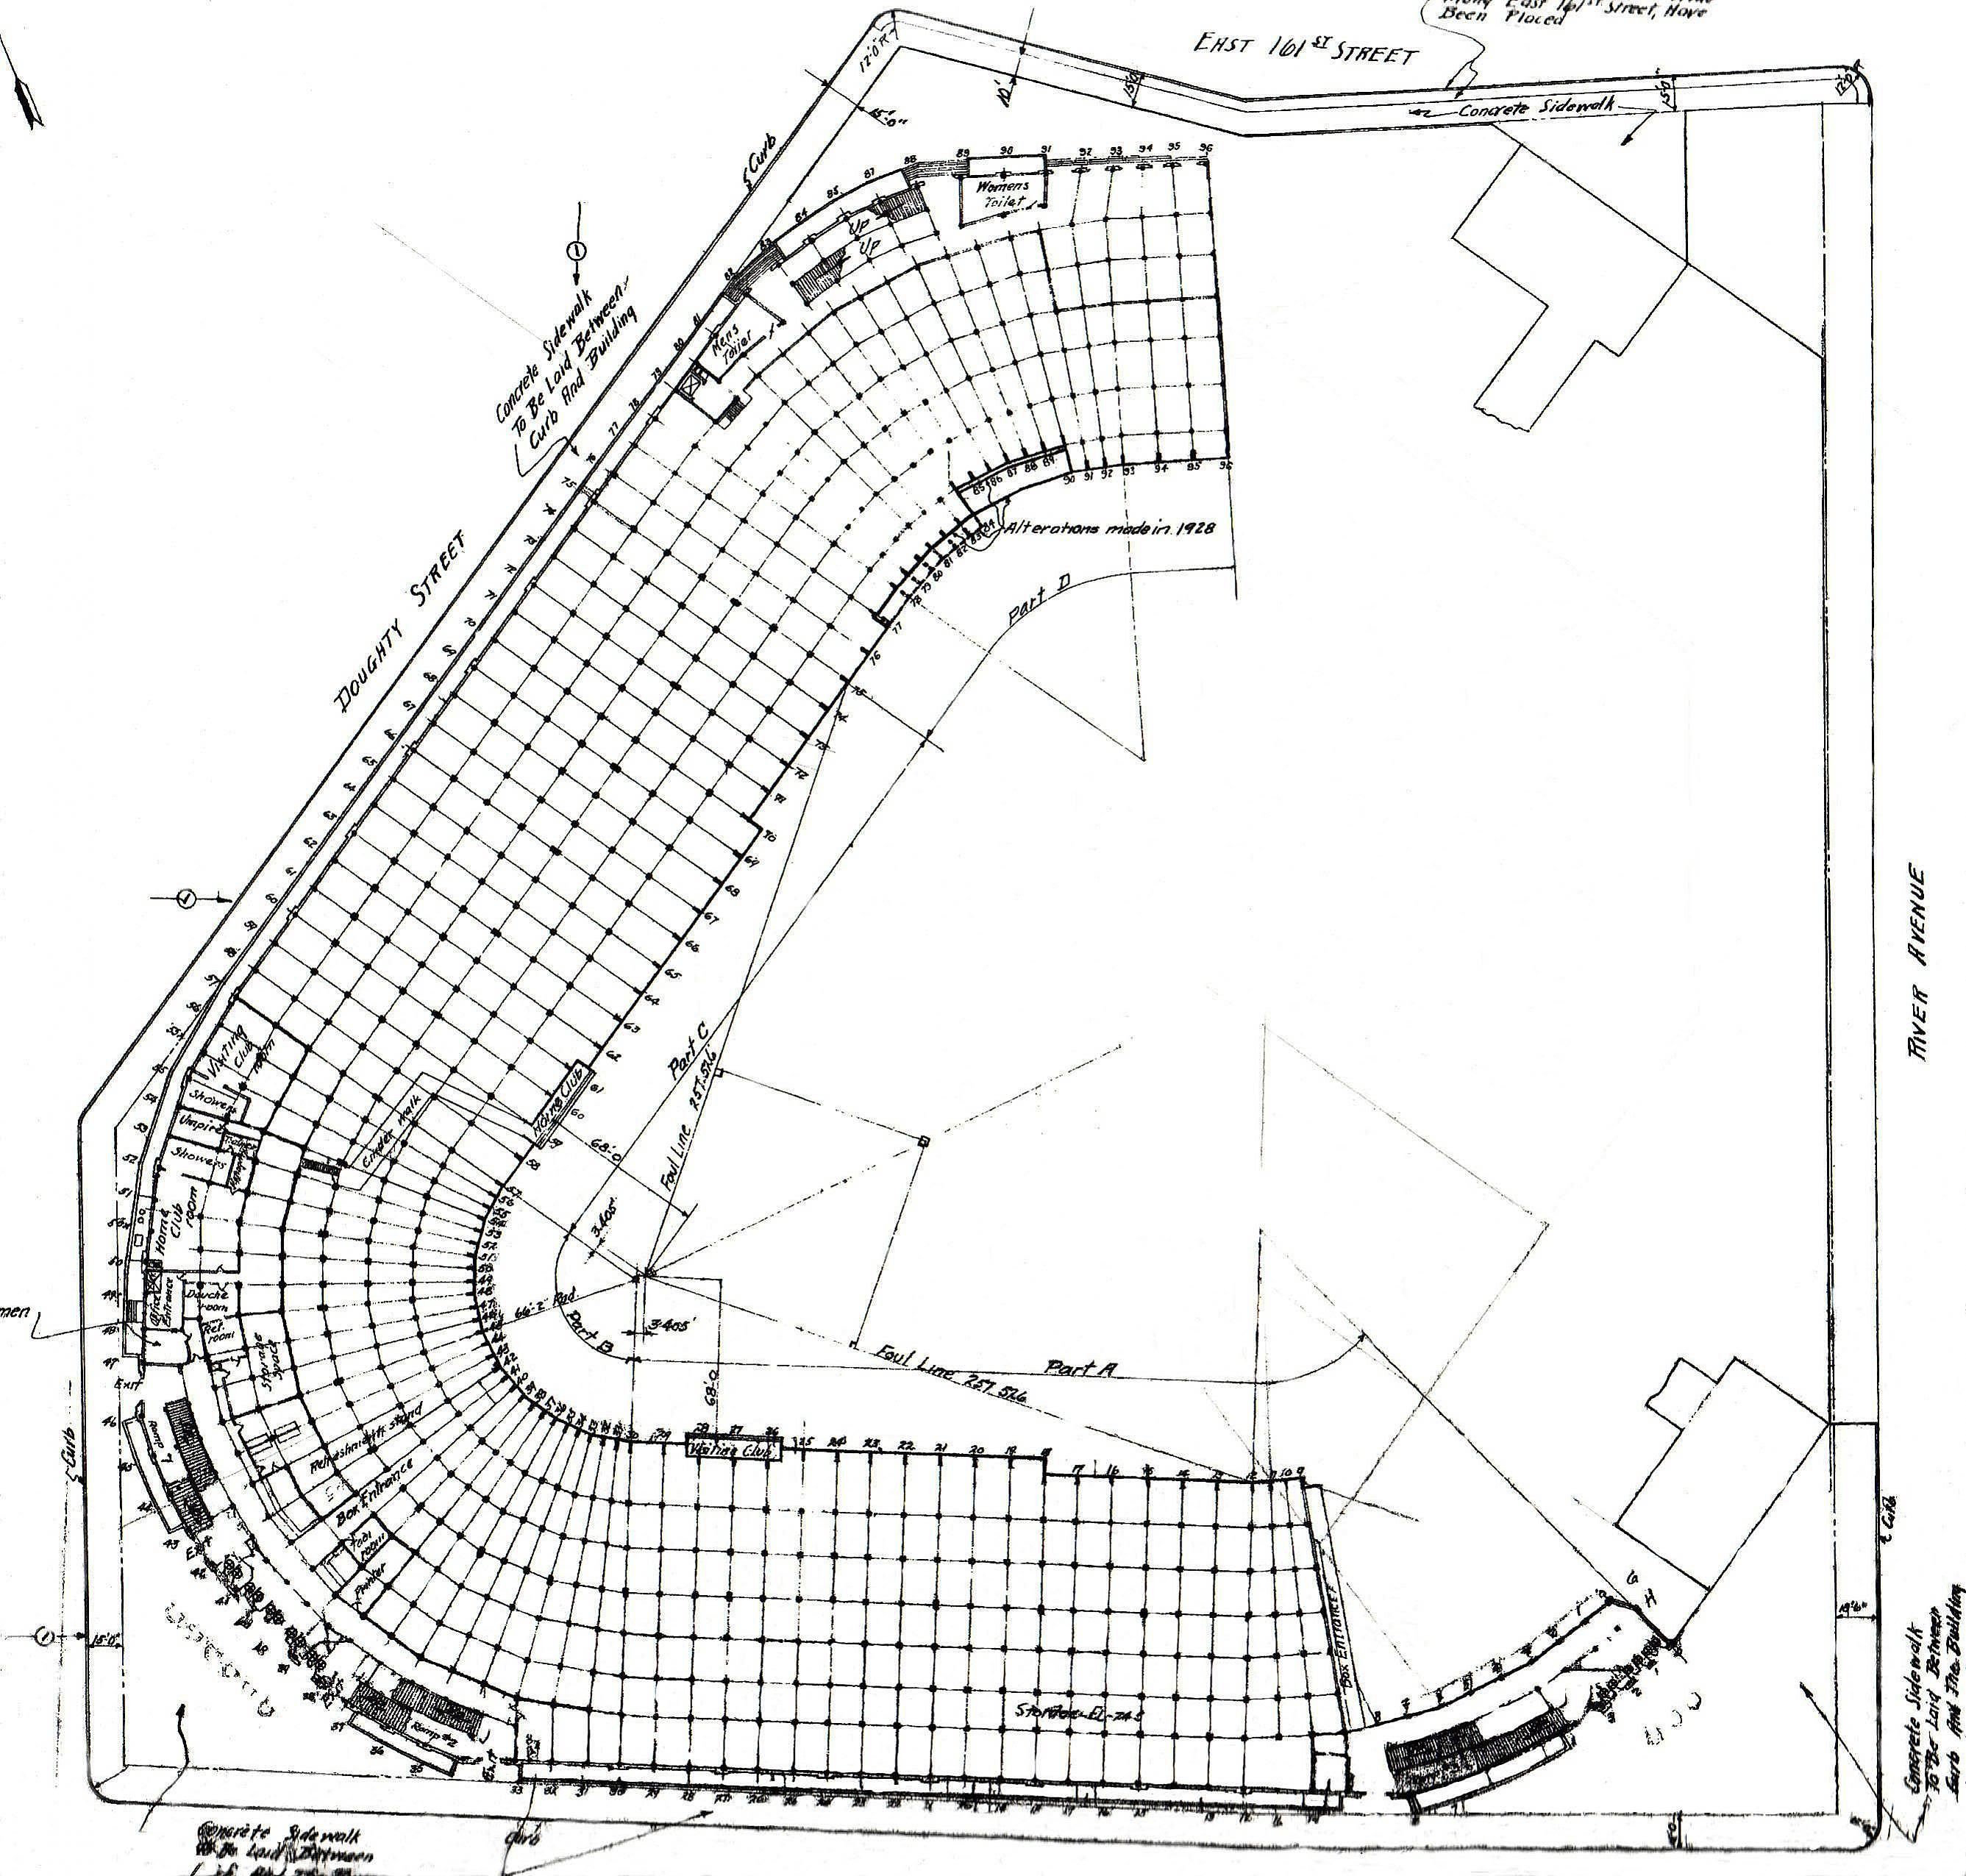 Old yankee stadium blueprint sports architecture pinterest old yankee stadium blueprint malvernweather Image collections